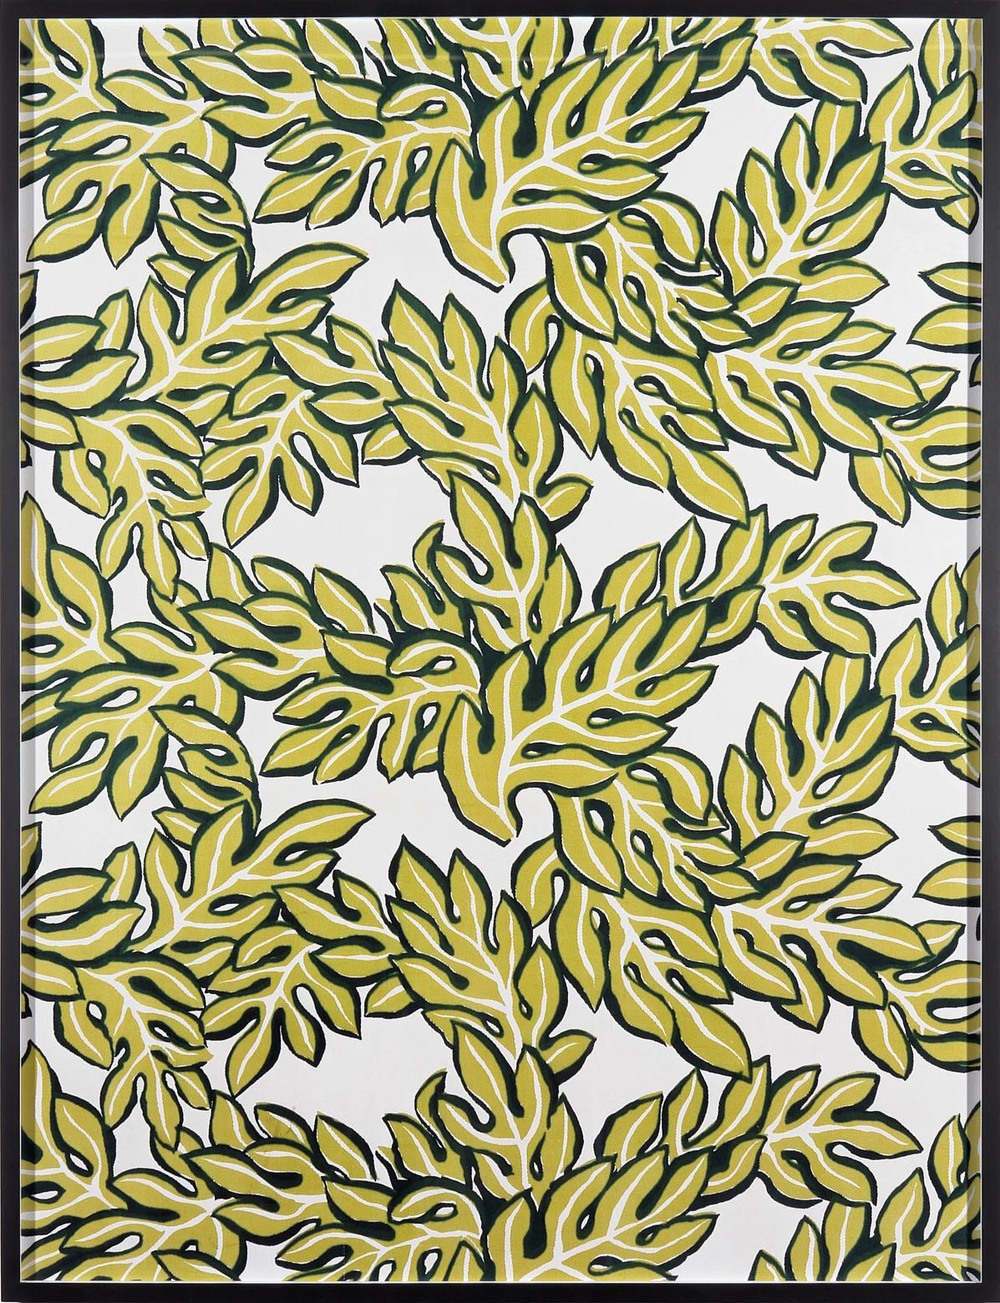 Annette Kelm Big Print #6 (Jungle Leaves - cotton twill 1947 design Dorothy Draper, courtesy Schumacher &Co) 2007 C-Print: 131.5 x 100.5 cm